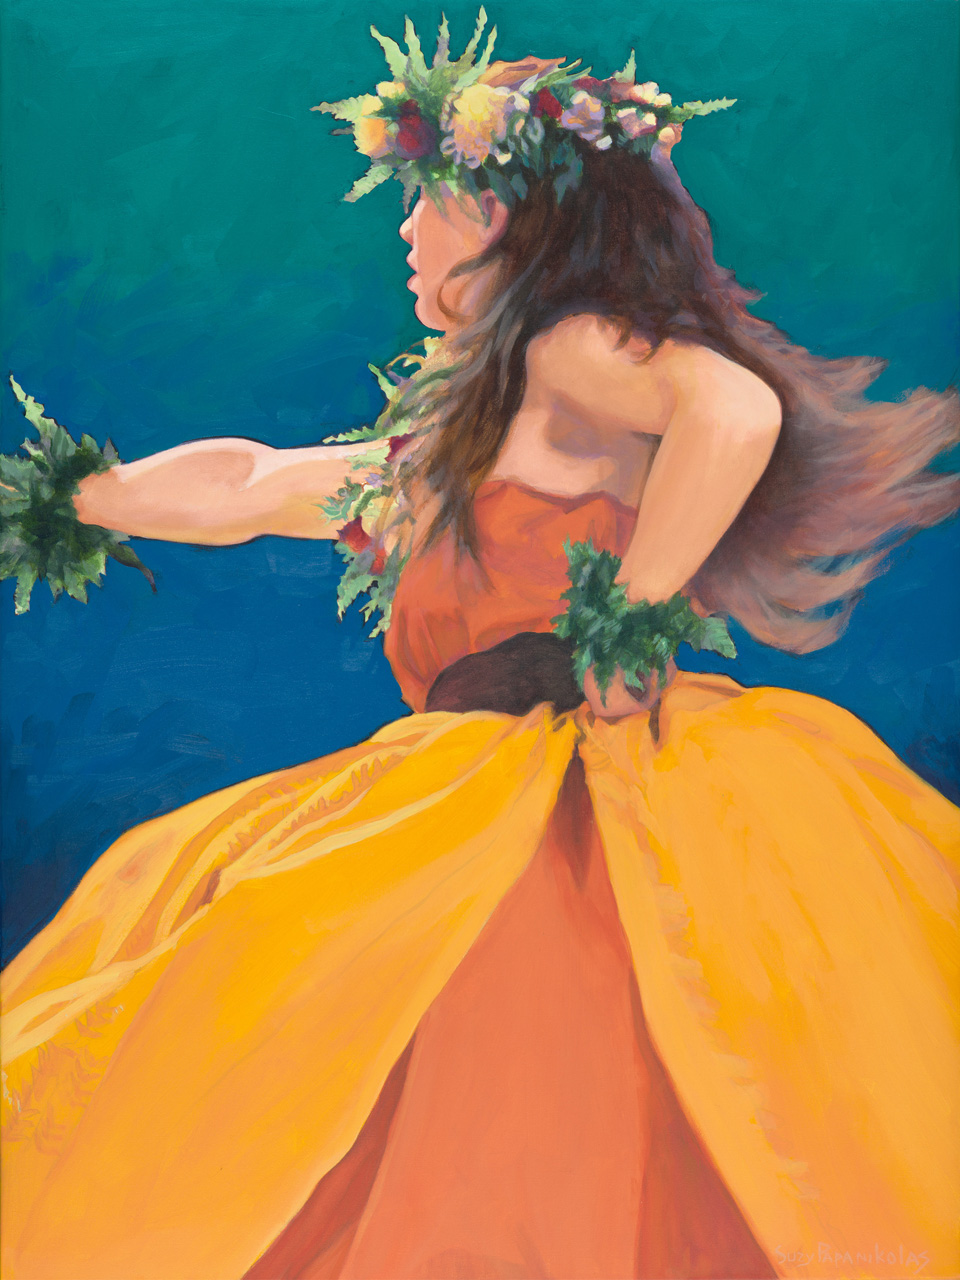 A female hula dancer in motion wearing yellow and orange with ti leaf additions and long brown hair